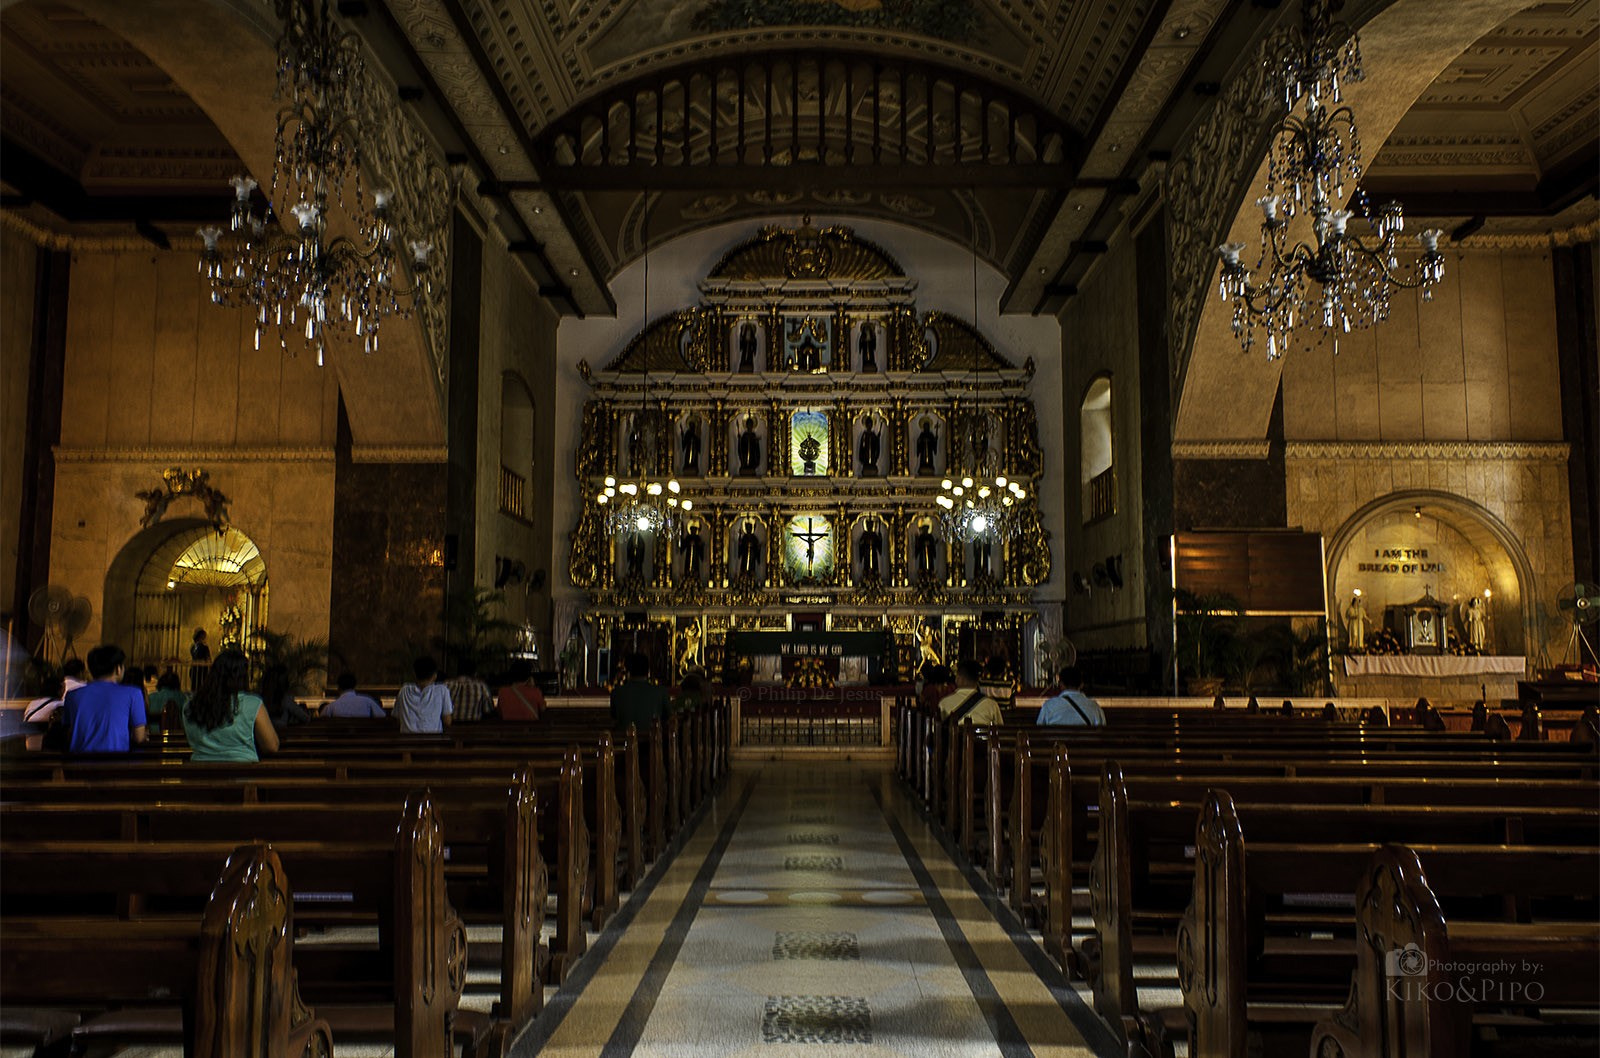 Photograph Inside the Basilica Menor Del Sto. Niño by Pipo De Jesus on 500px